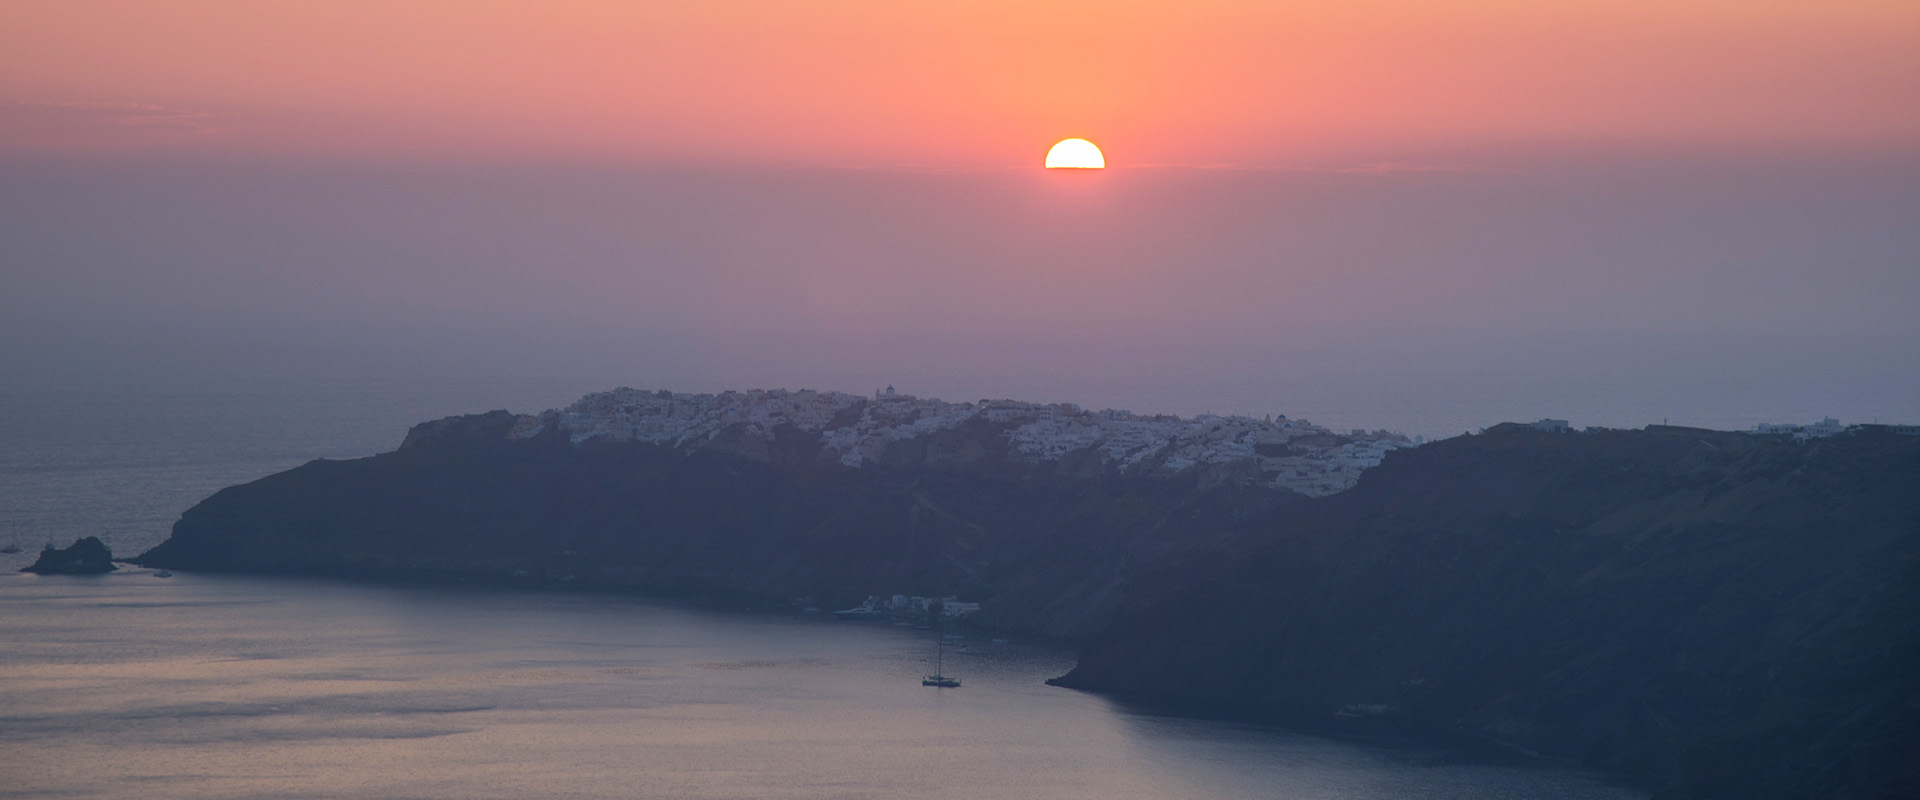 santorini hotels - Gizis Exclusive Santorini Greece